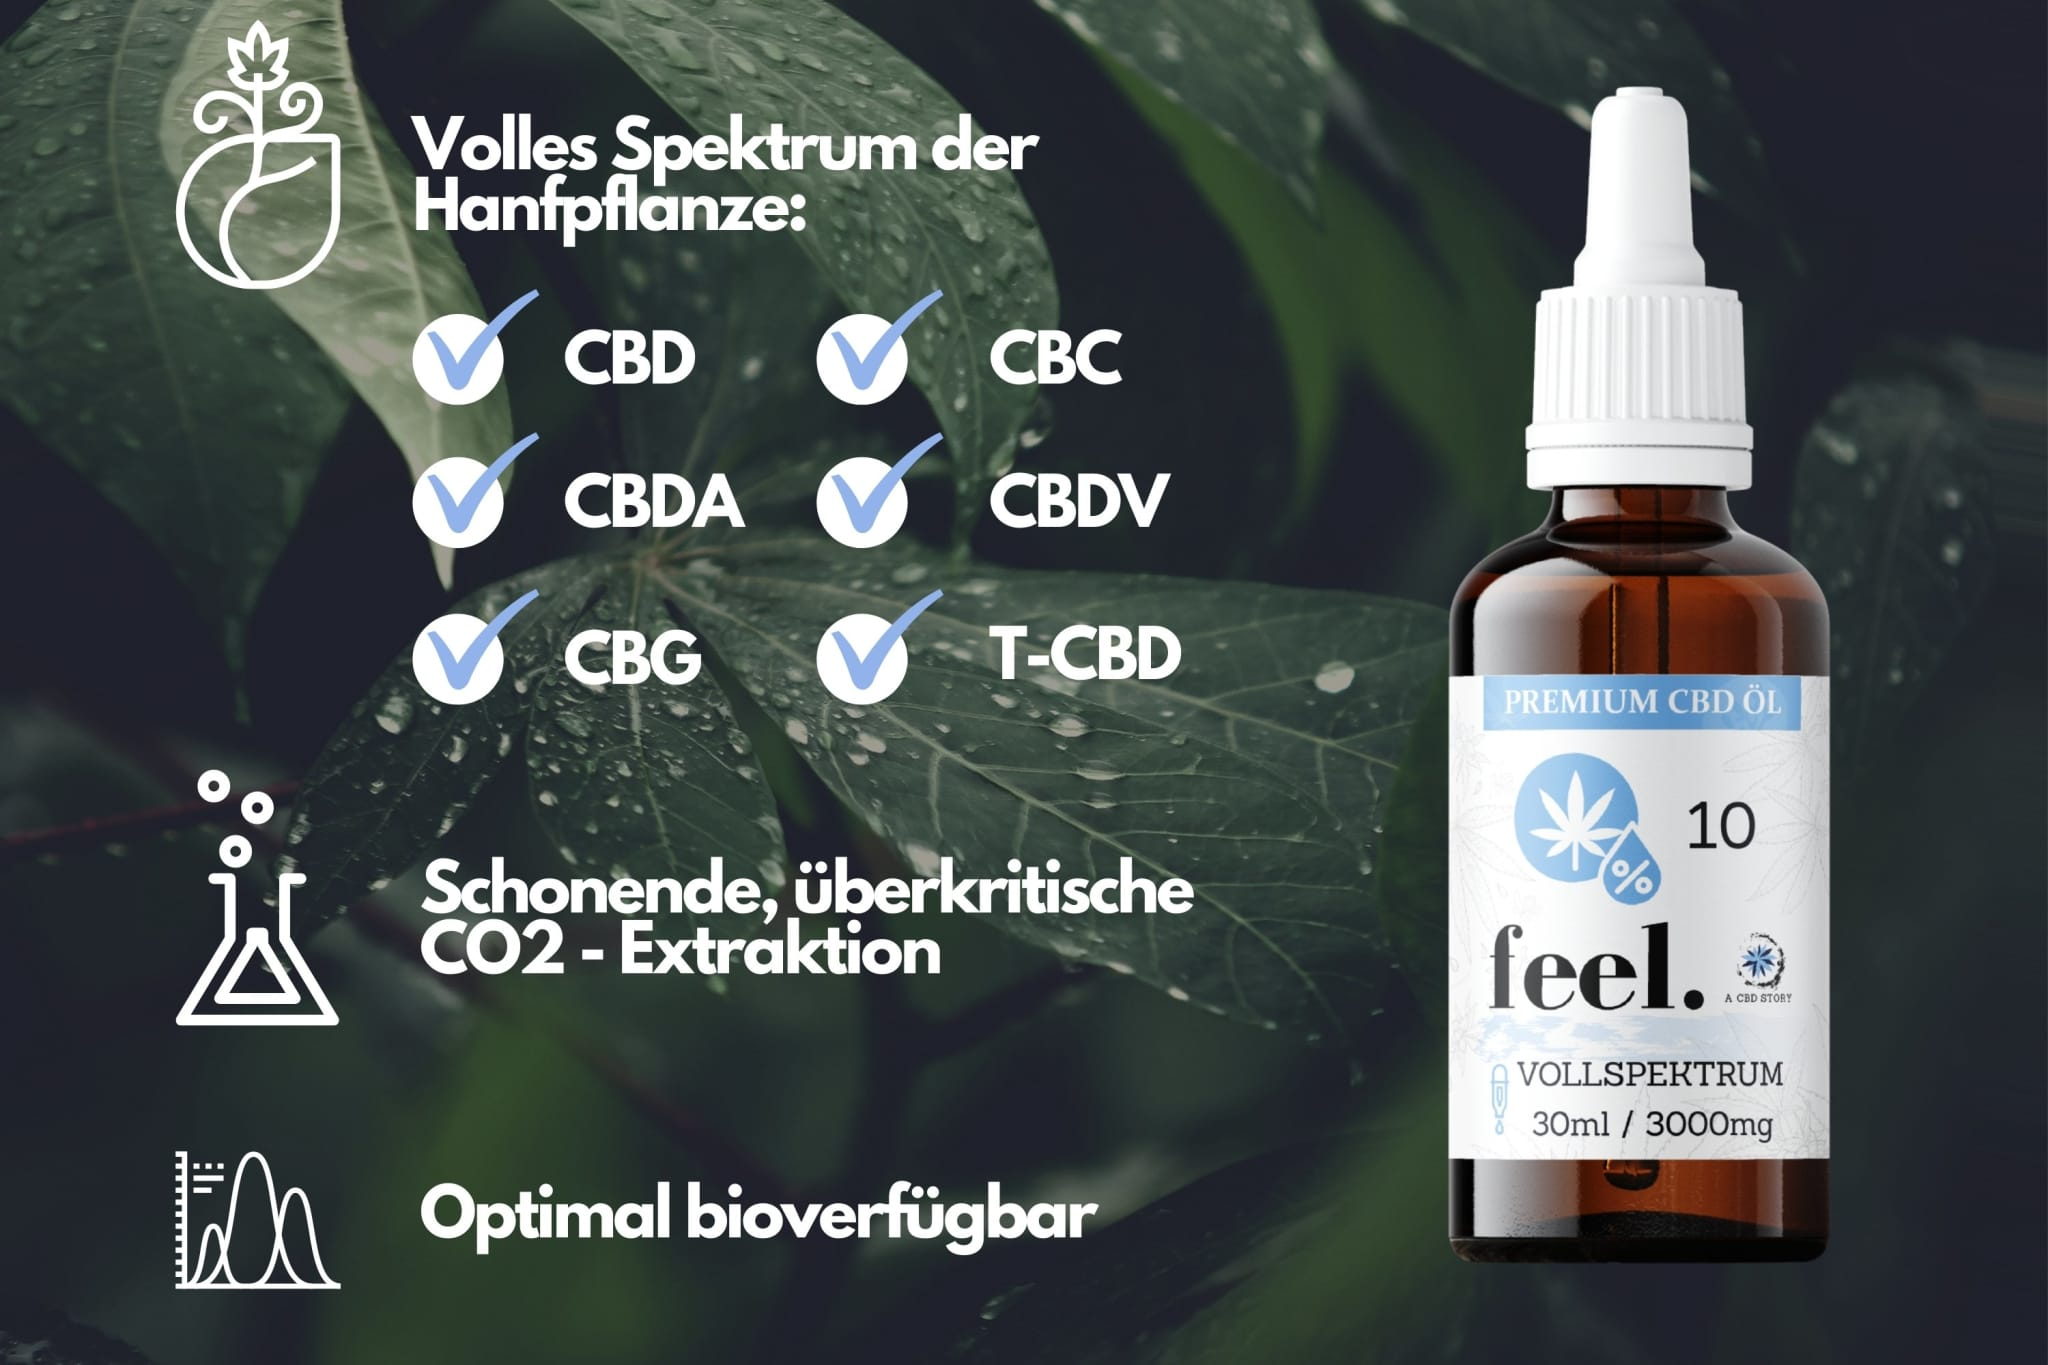 feel. Vollspektrum CBD Öl 10% - 30ml